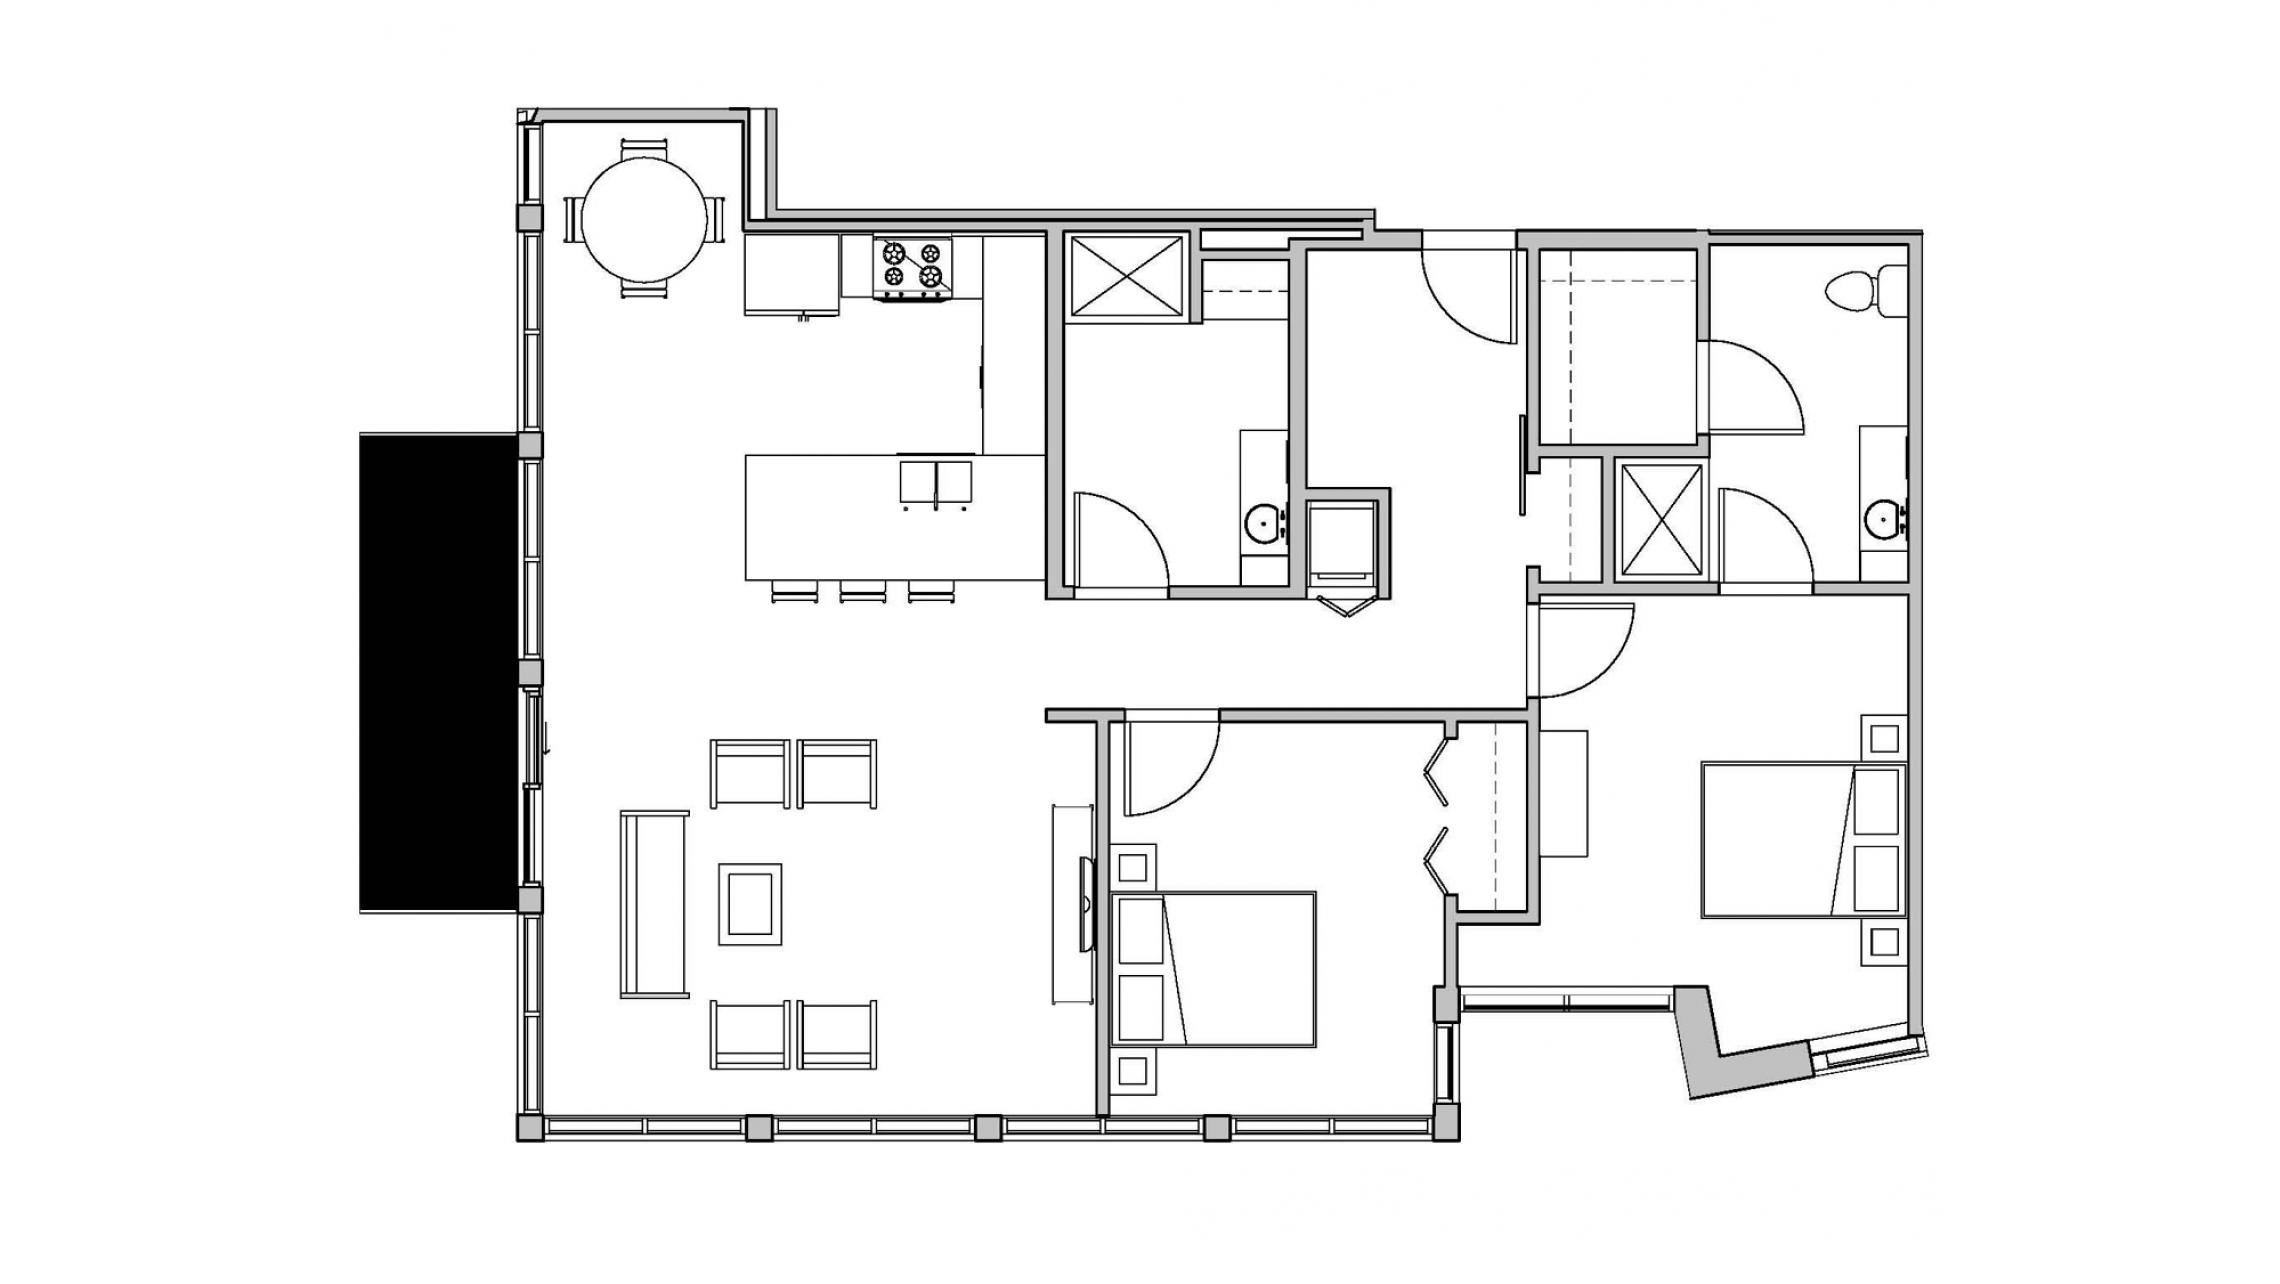 ULI Seven27 201 - Two Bedroom, Two Bathroom